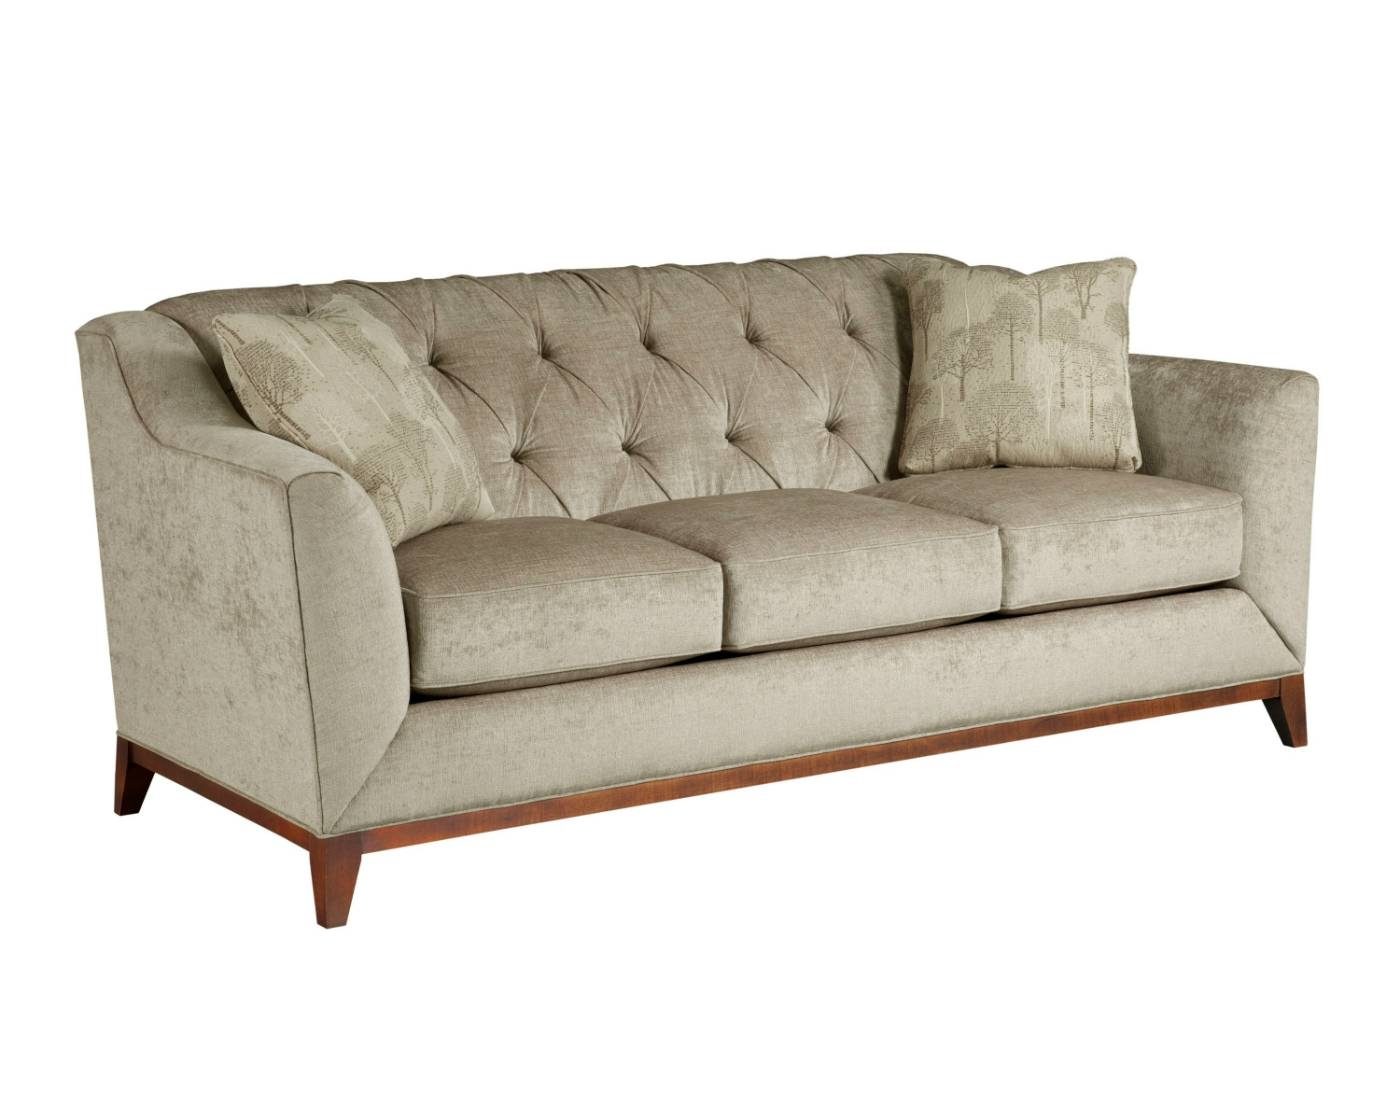 Living Room Archive - Chambers Furniture pertaining to Broyhill Harrison Sofas (Image 12 of 15)